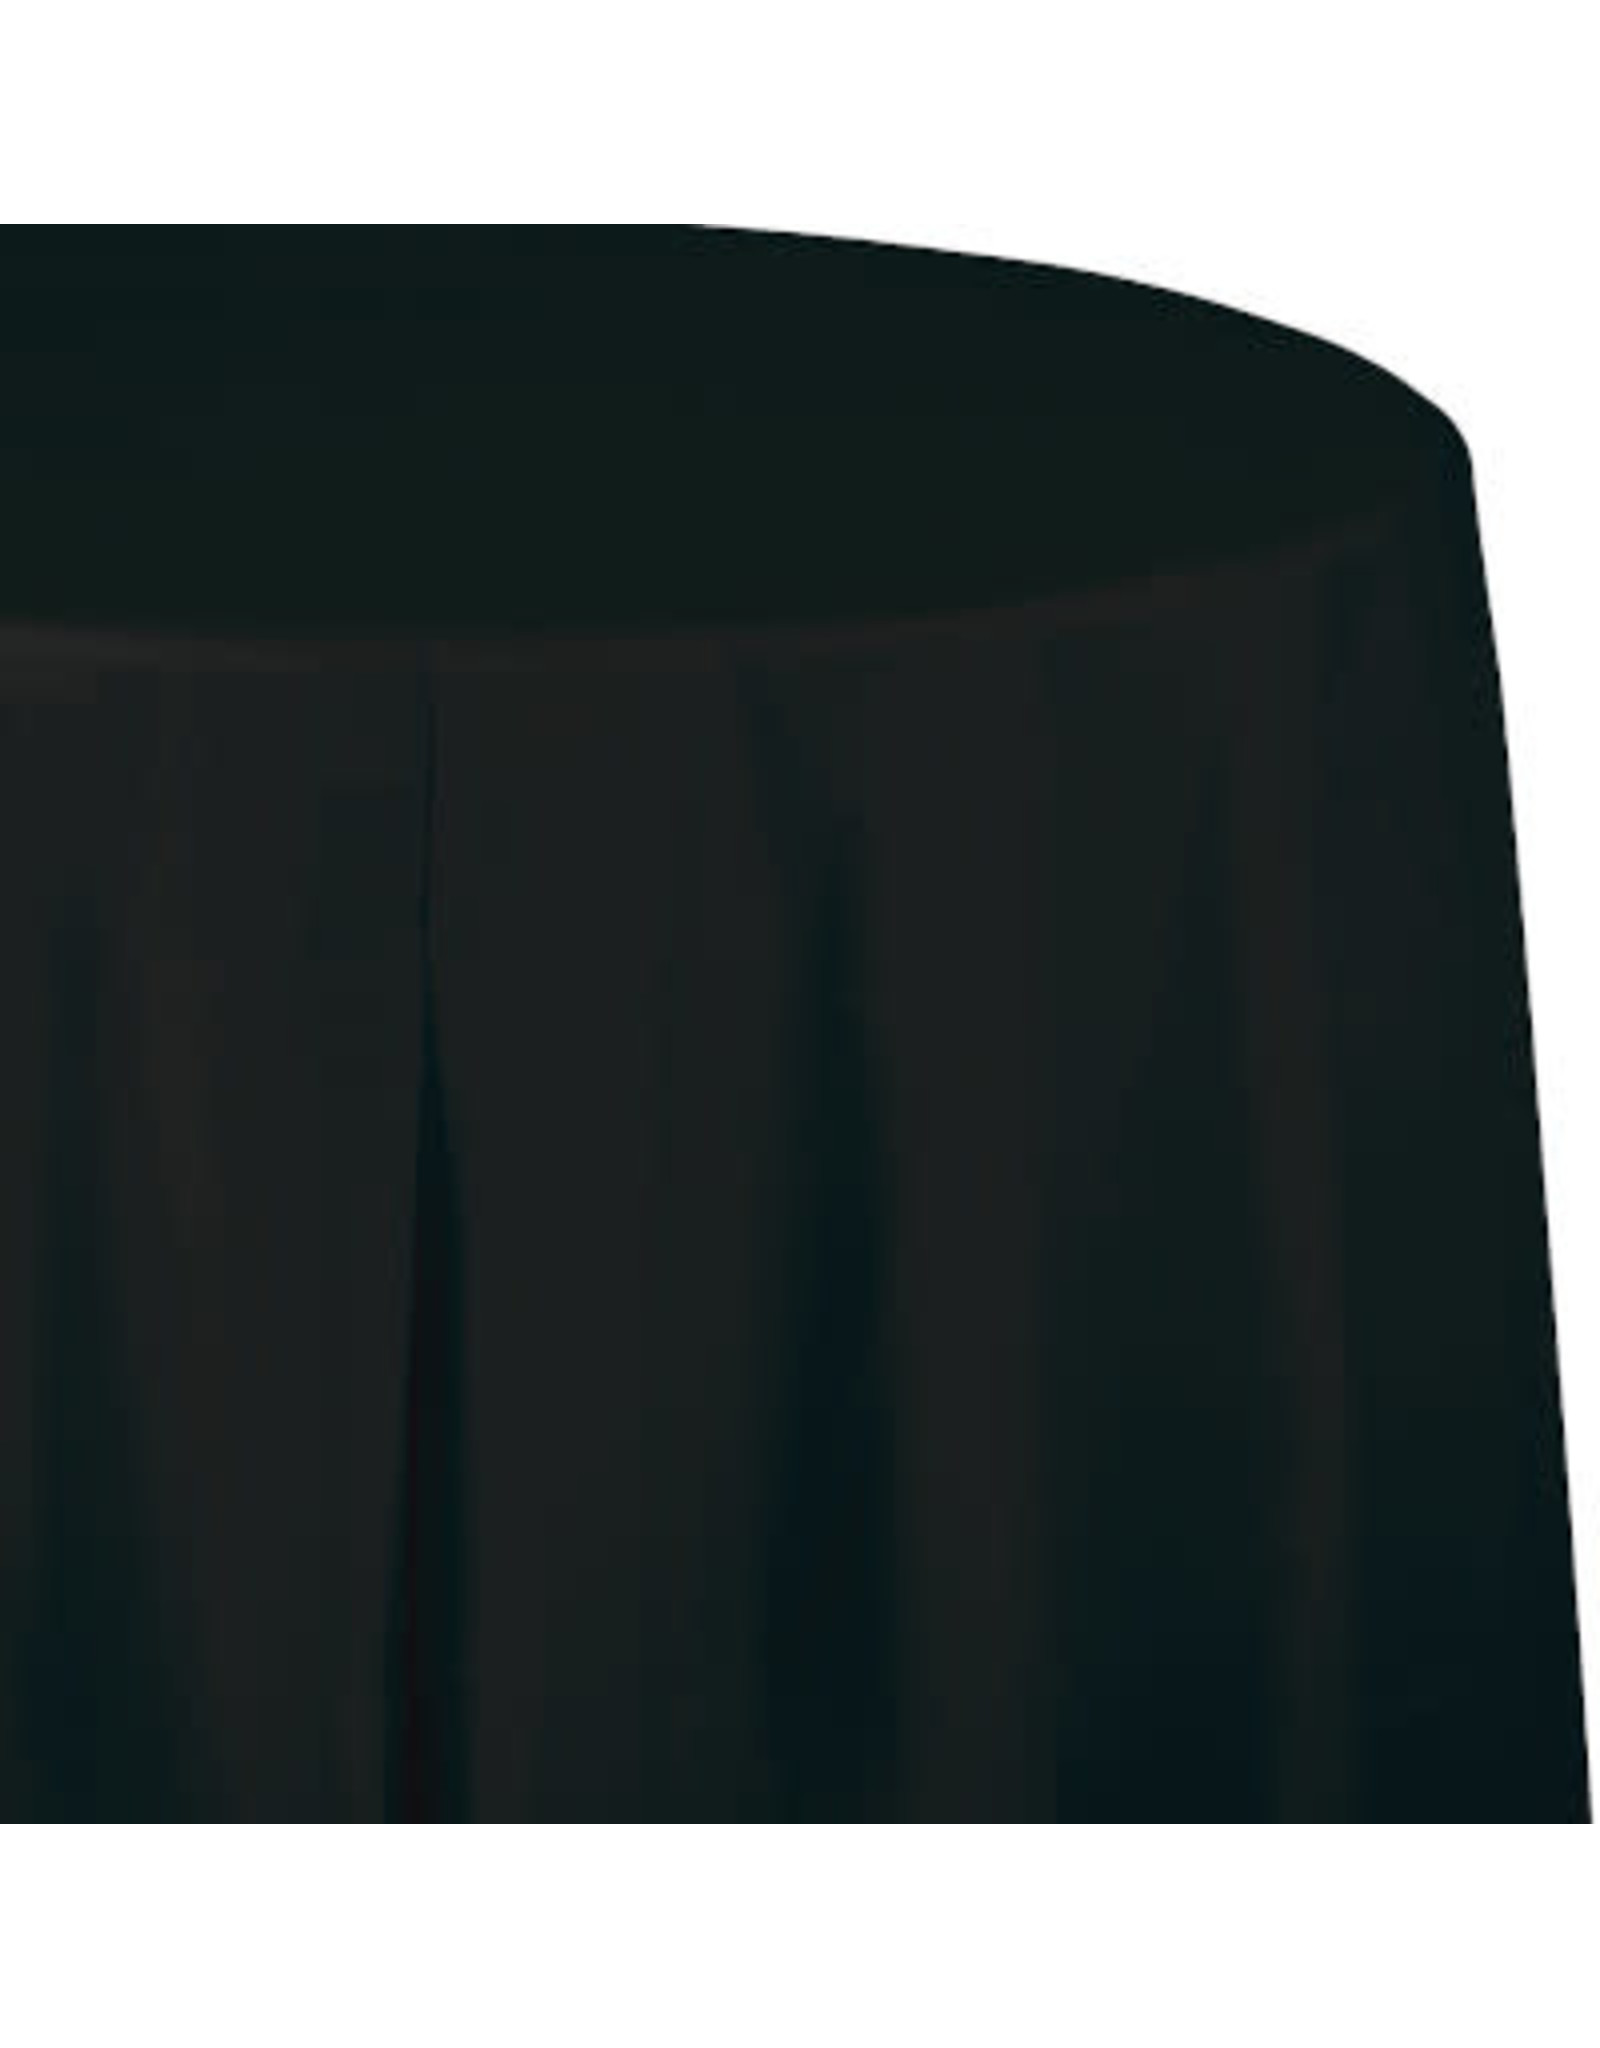 Touch of Color BLACK ROUND PLASTIC TABLECLOTH